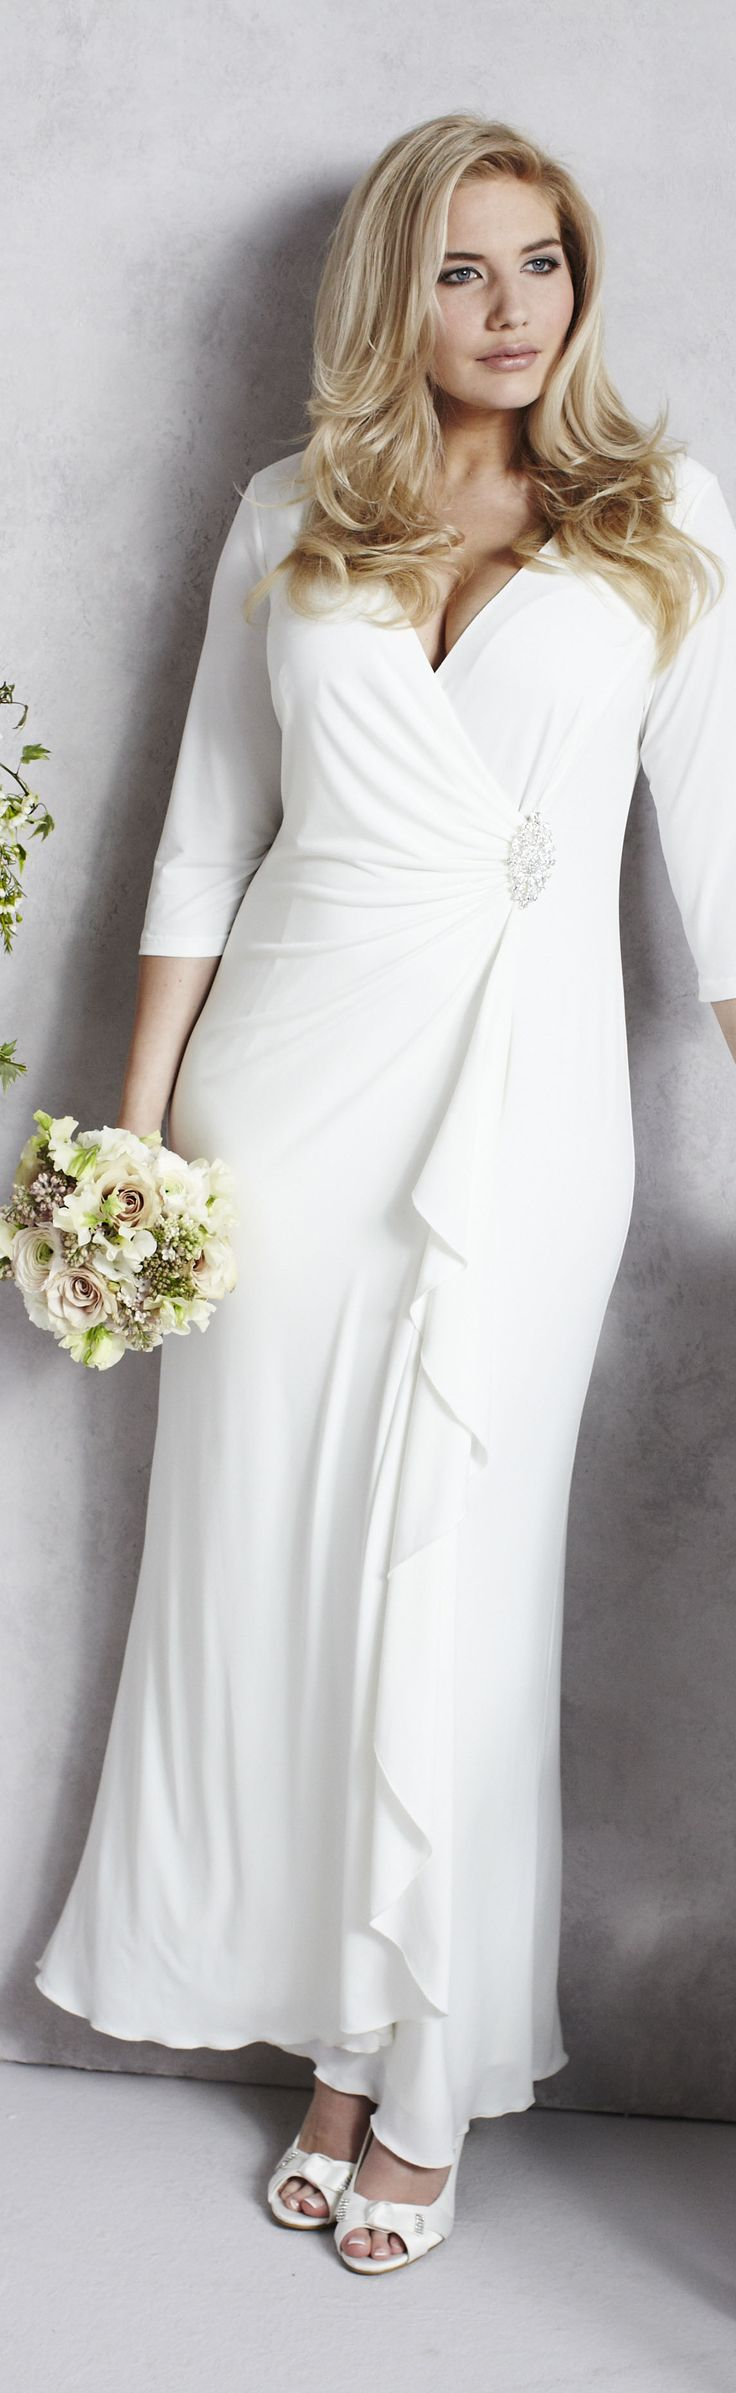 Wedding Dresses For Older Brides Second Weddings : Wedding dresses second weddings and plus size